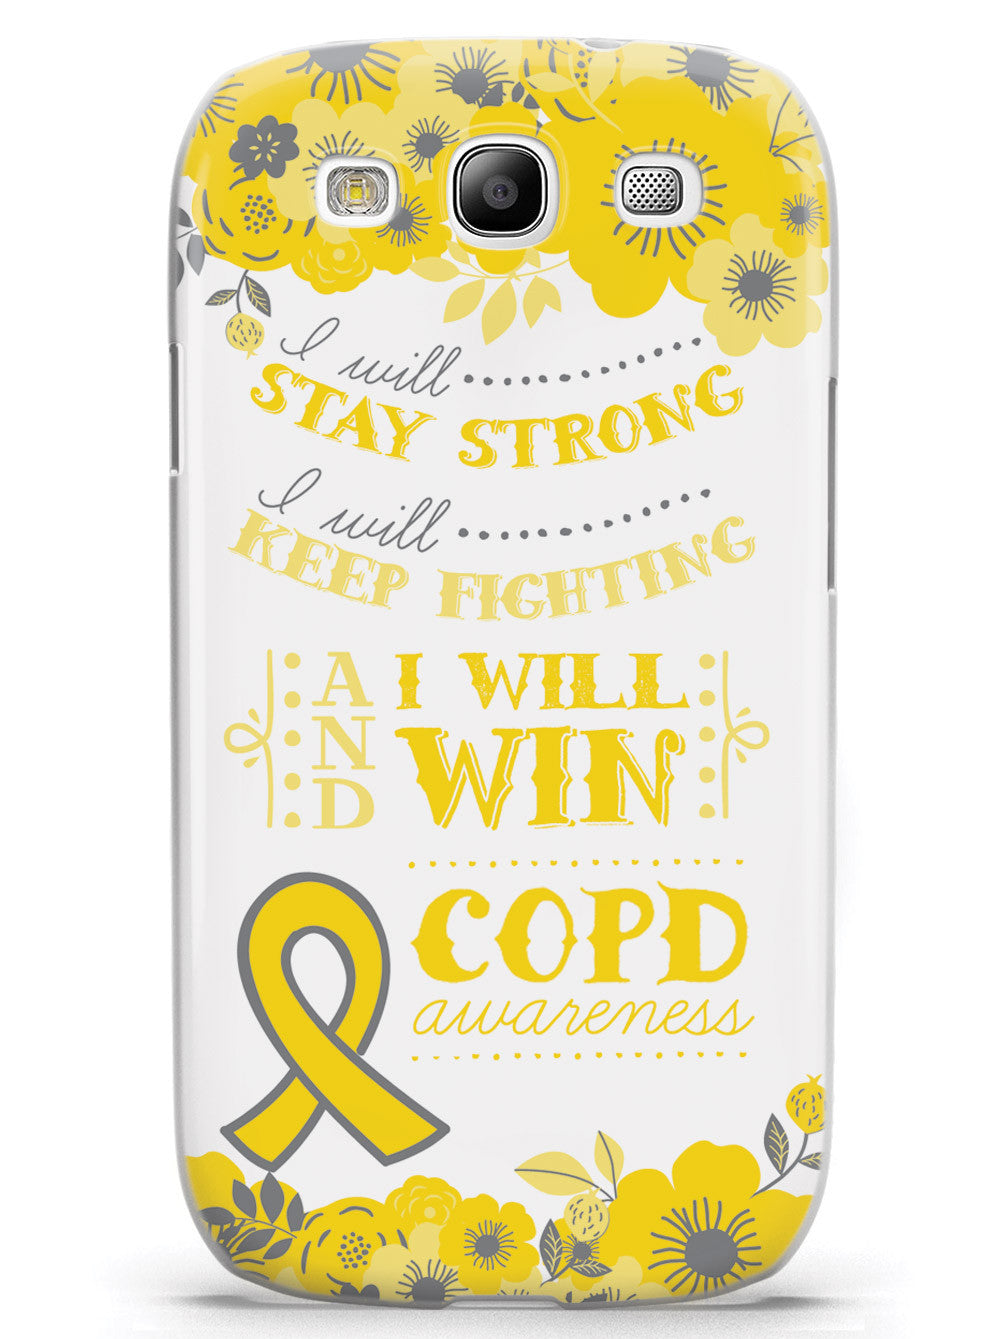 I Will Win - COPD Awareness Case